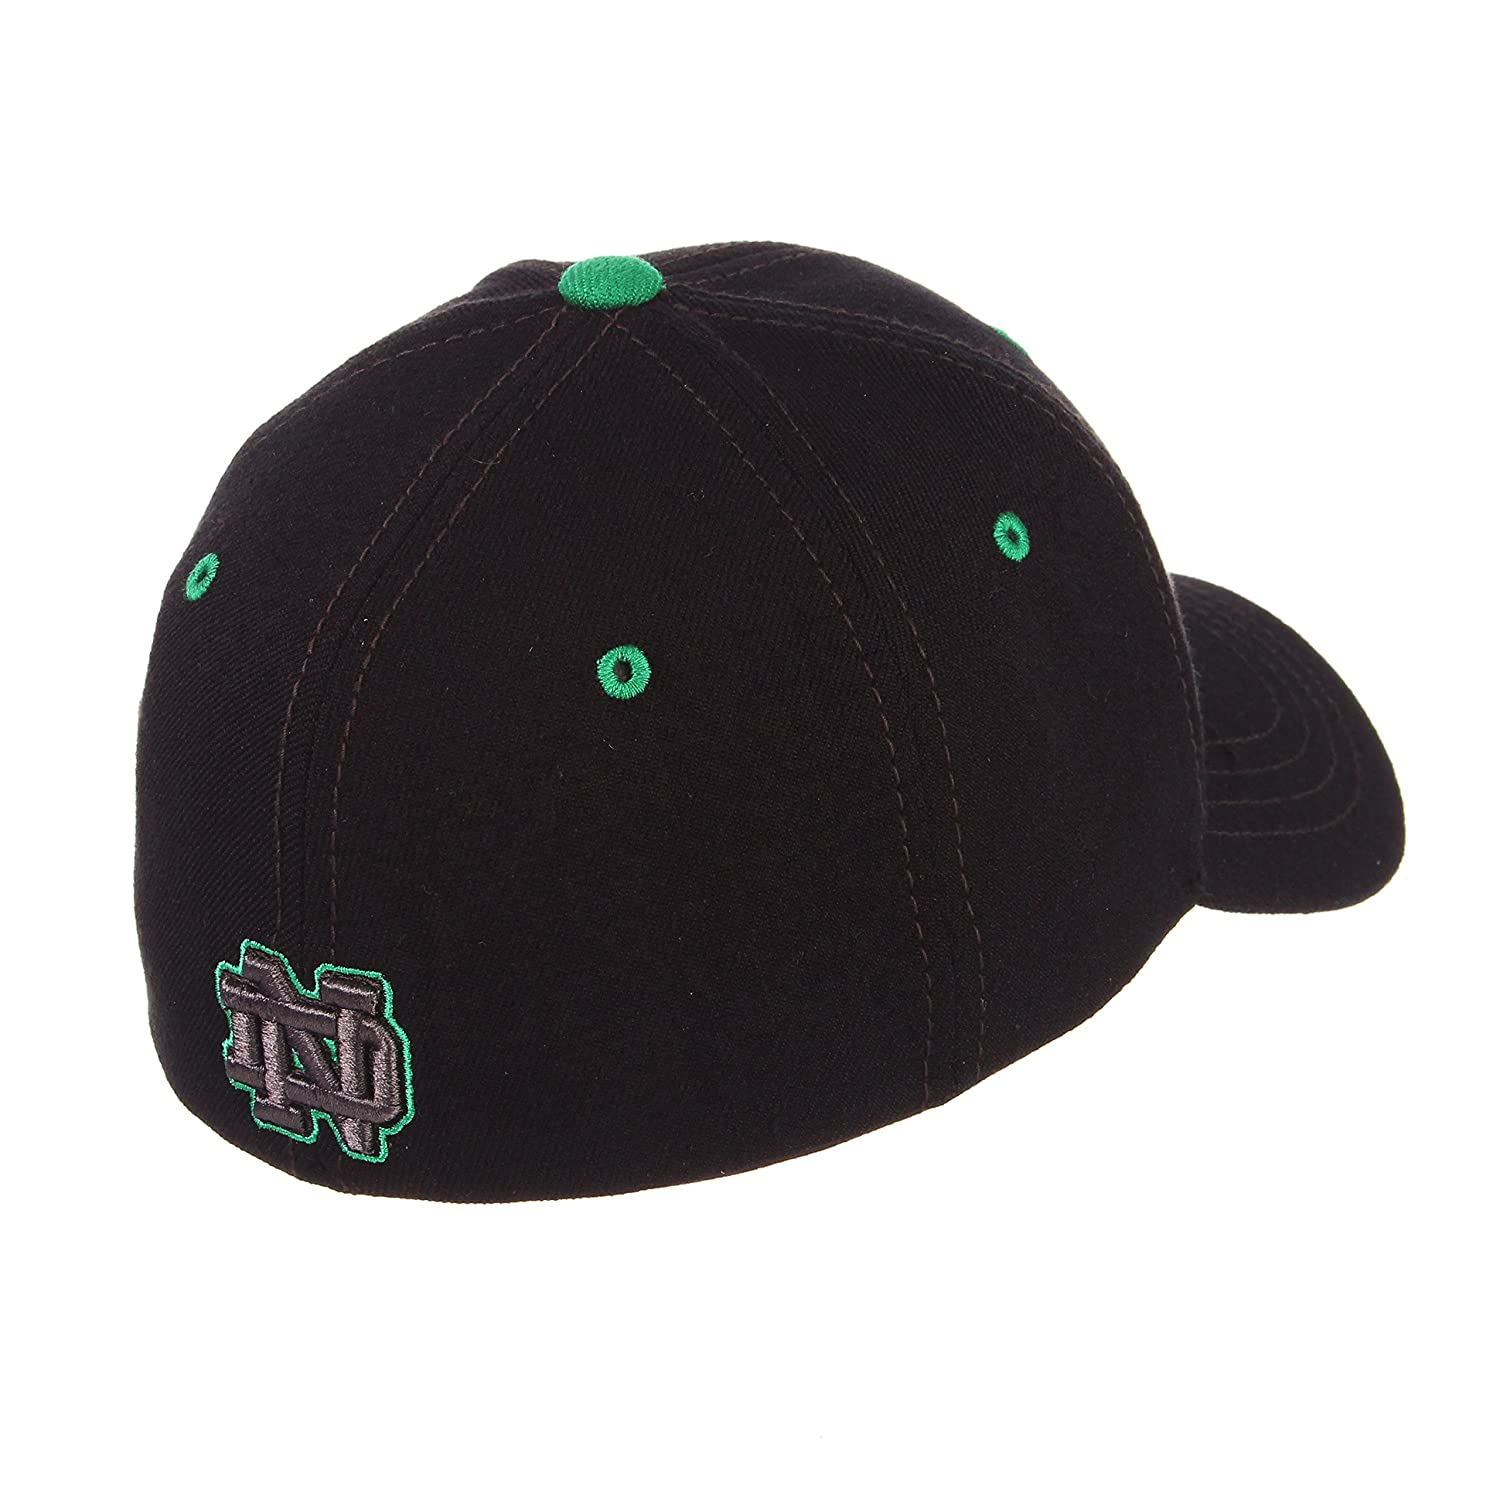 3cc79f002a8 Amazon.com   Zephyr Notre Dame Fighting Irish Official NCAA Black Element  Large Hat Cap by 444559   Sports   Outdoors